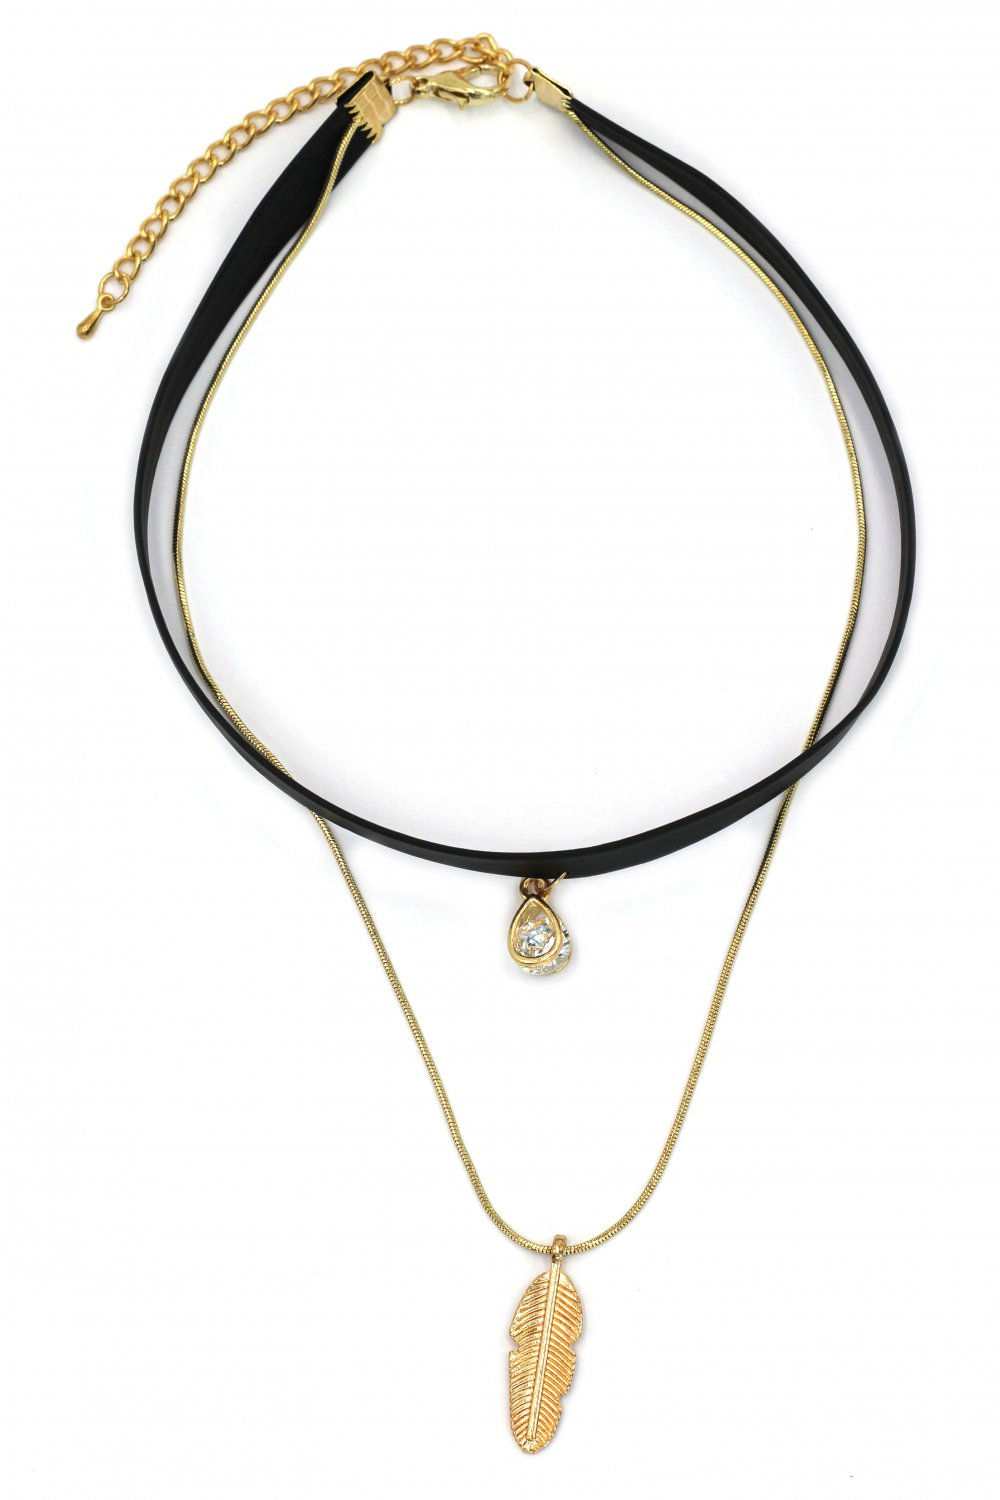 Fashion double-chain crystal drop and plumage pendant choker